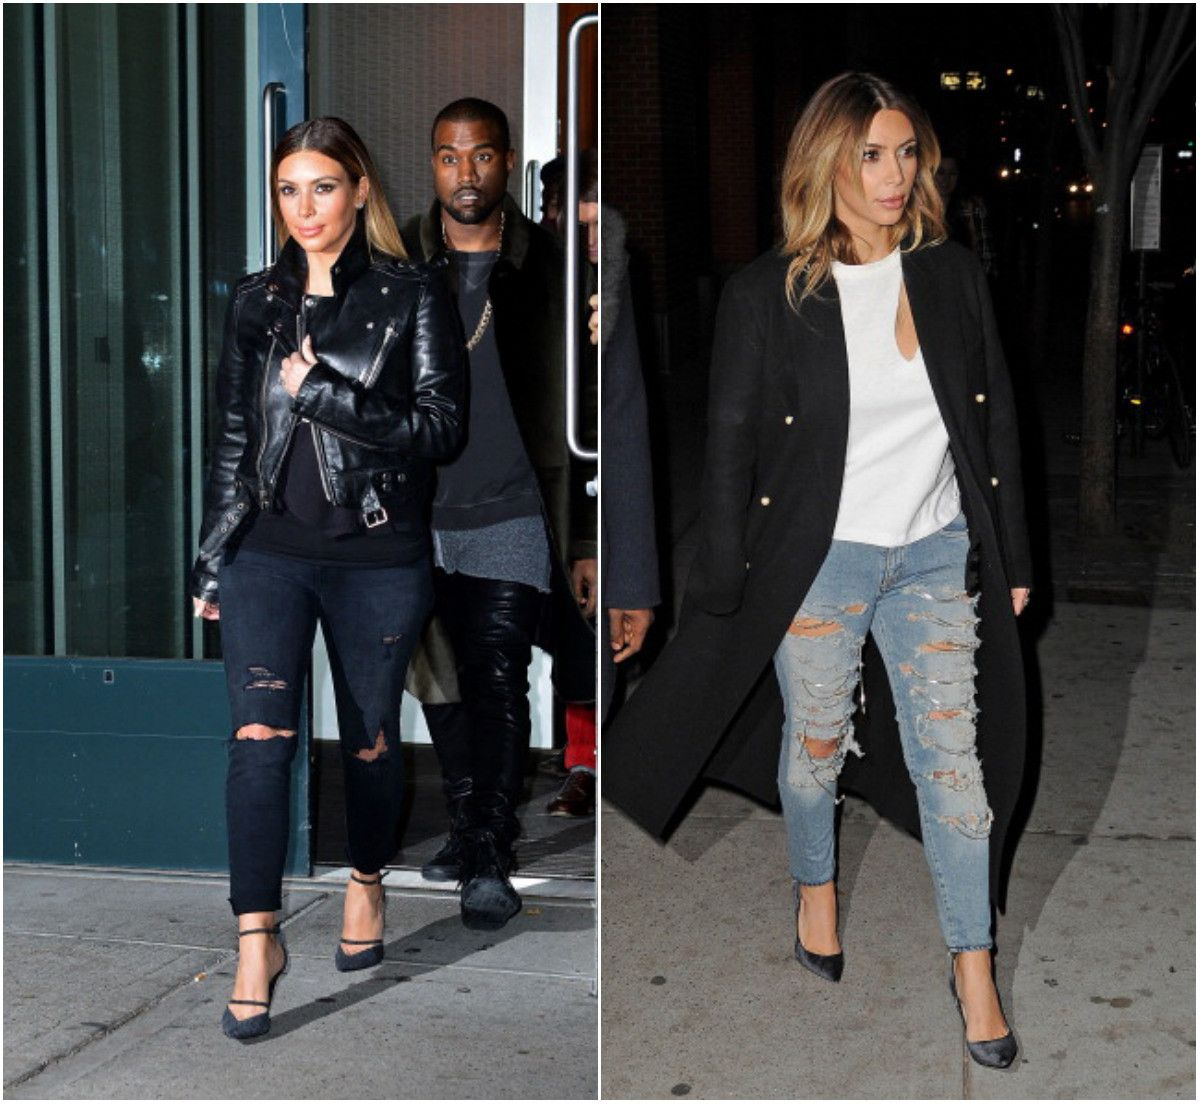 How to Make Ripped Jeans in 5 Easy Steps | Kim kardashian, Style ...